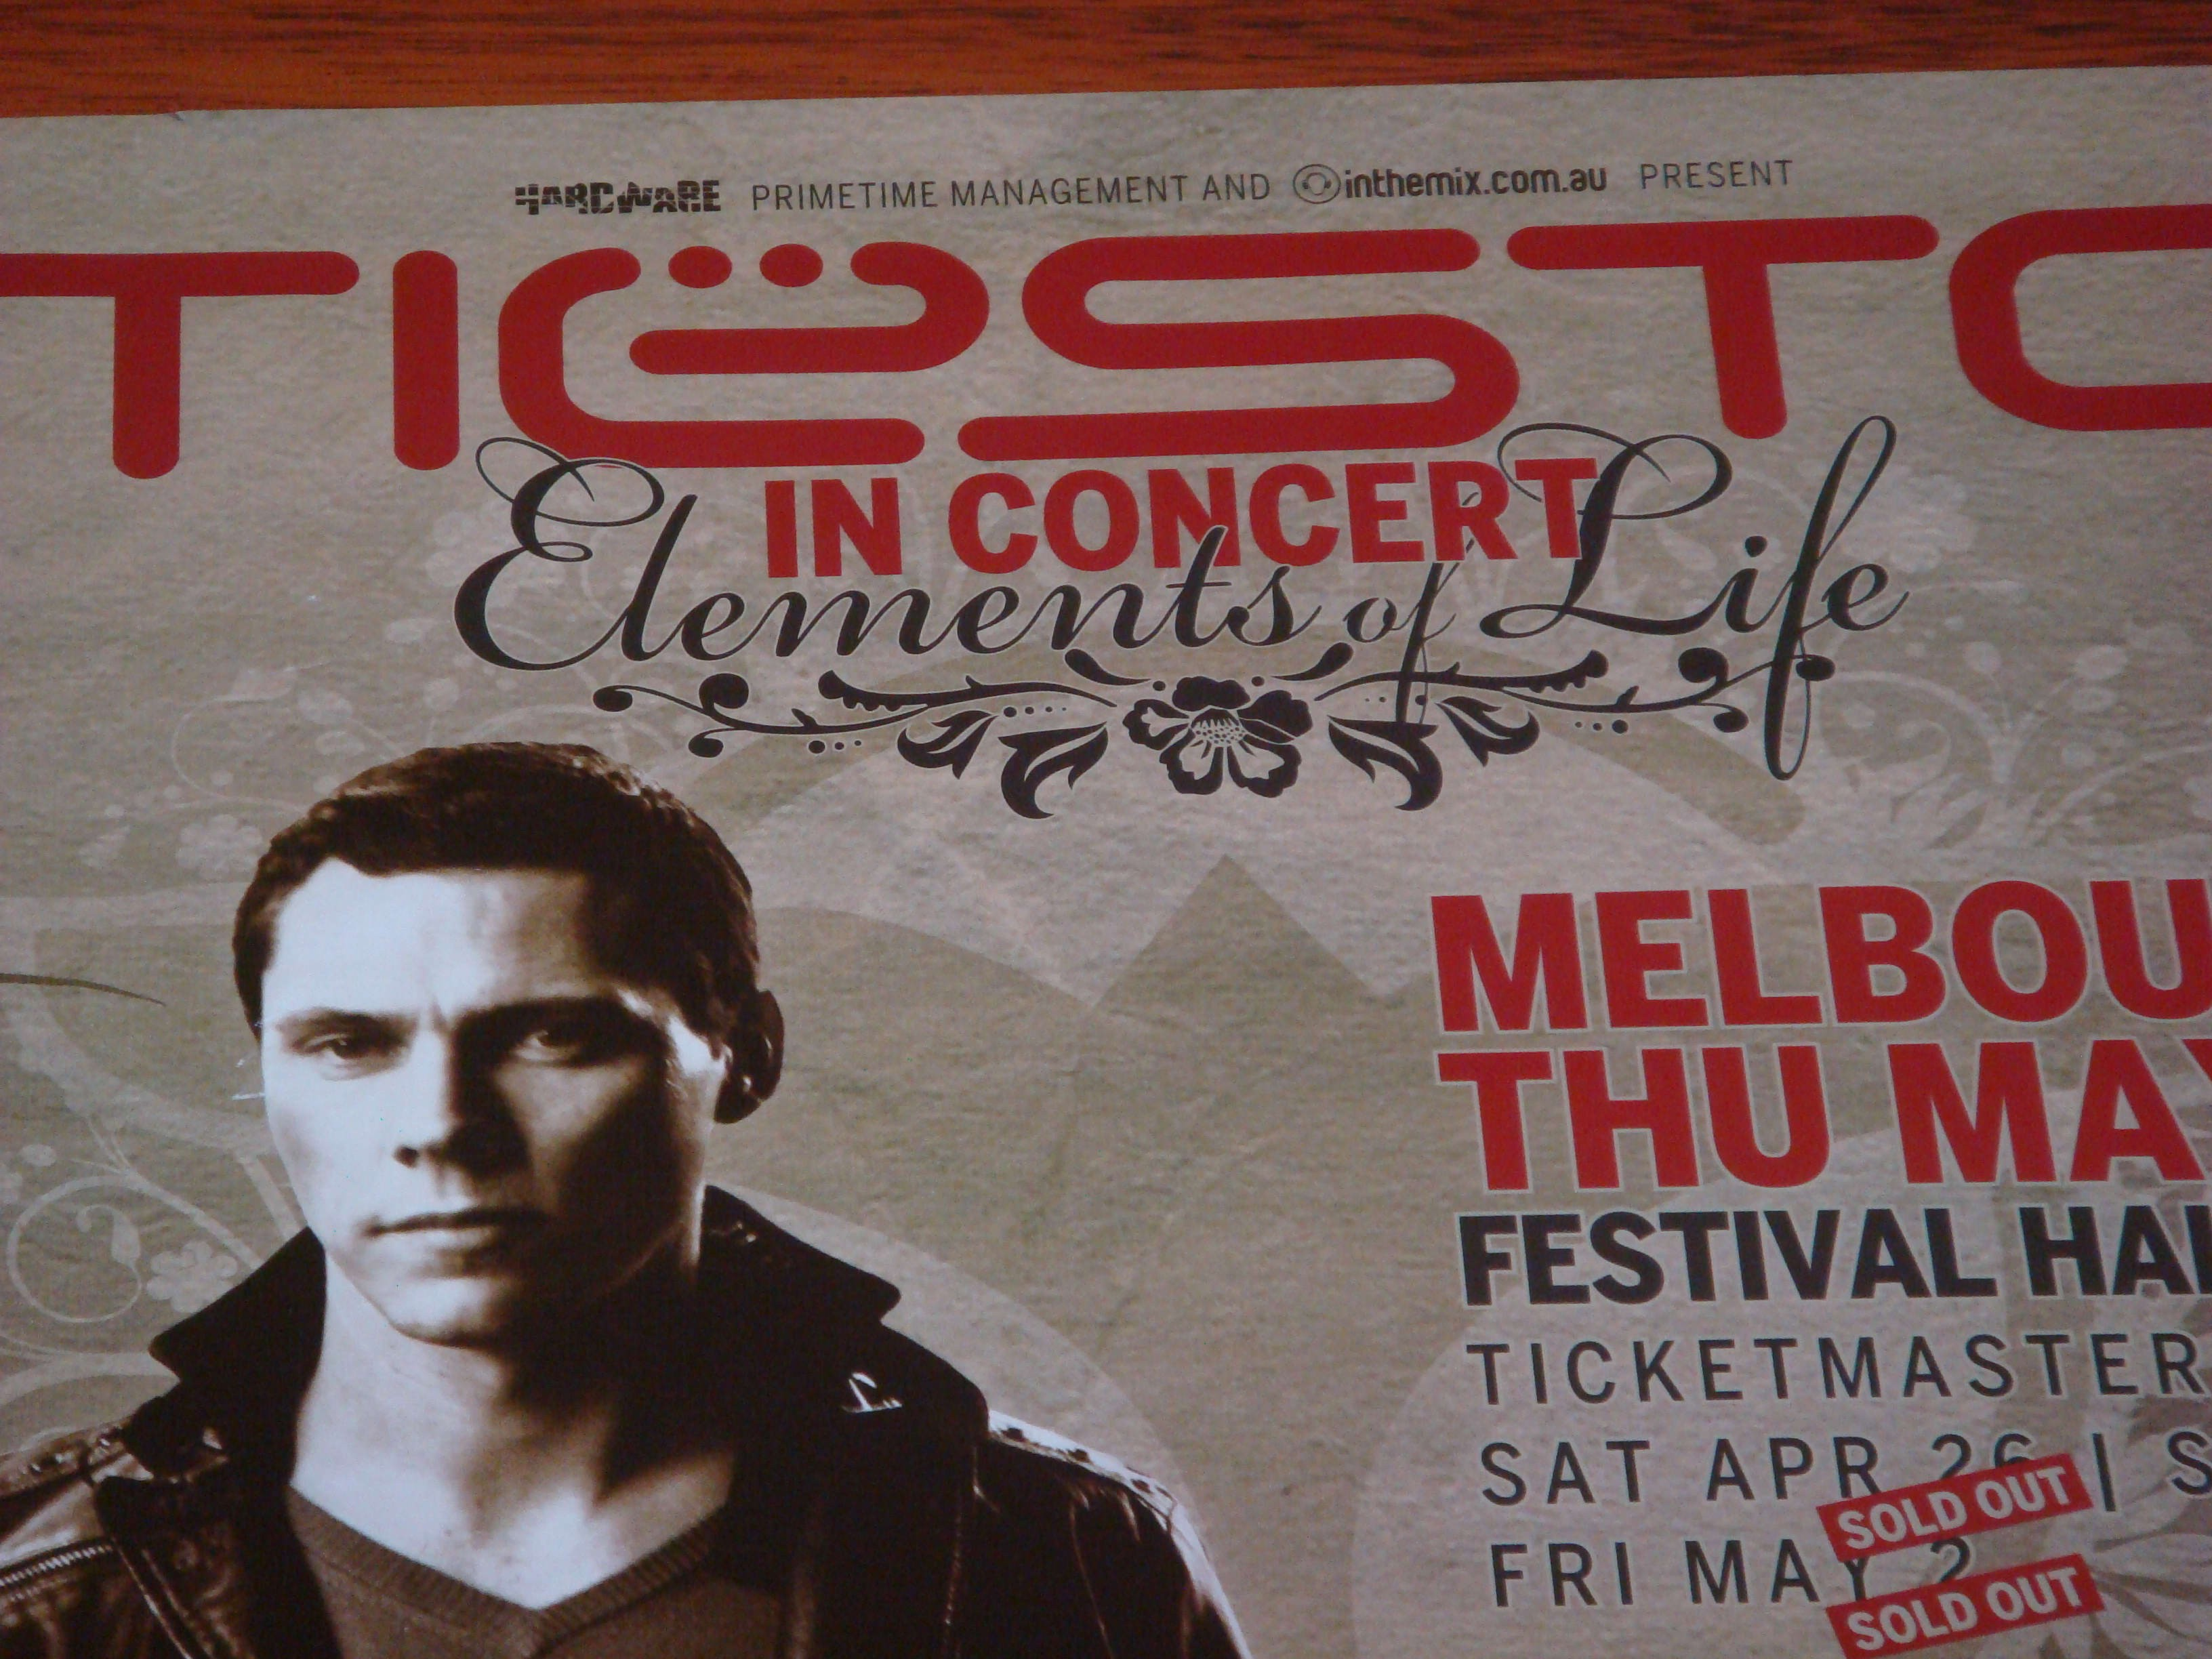 Tiesto in Concert Elements of Life Melbourne 1 May 2008 Poster